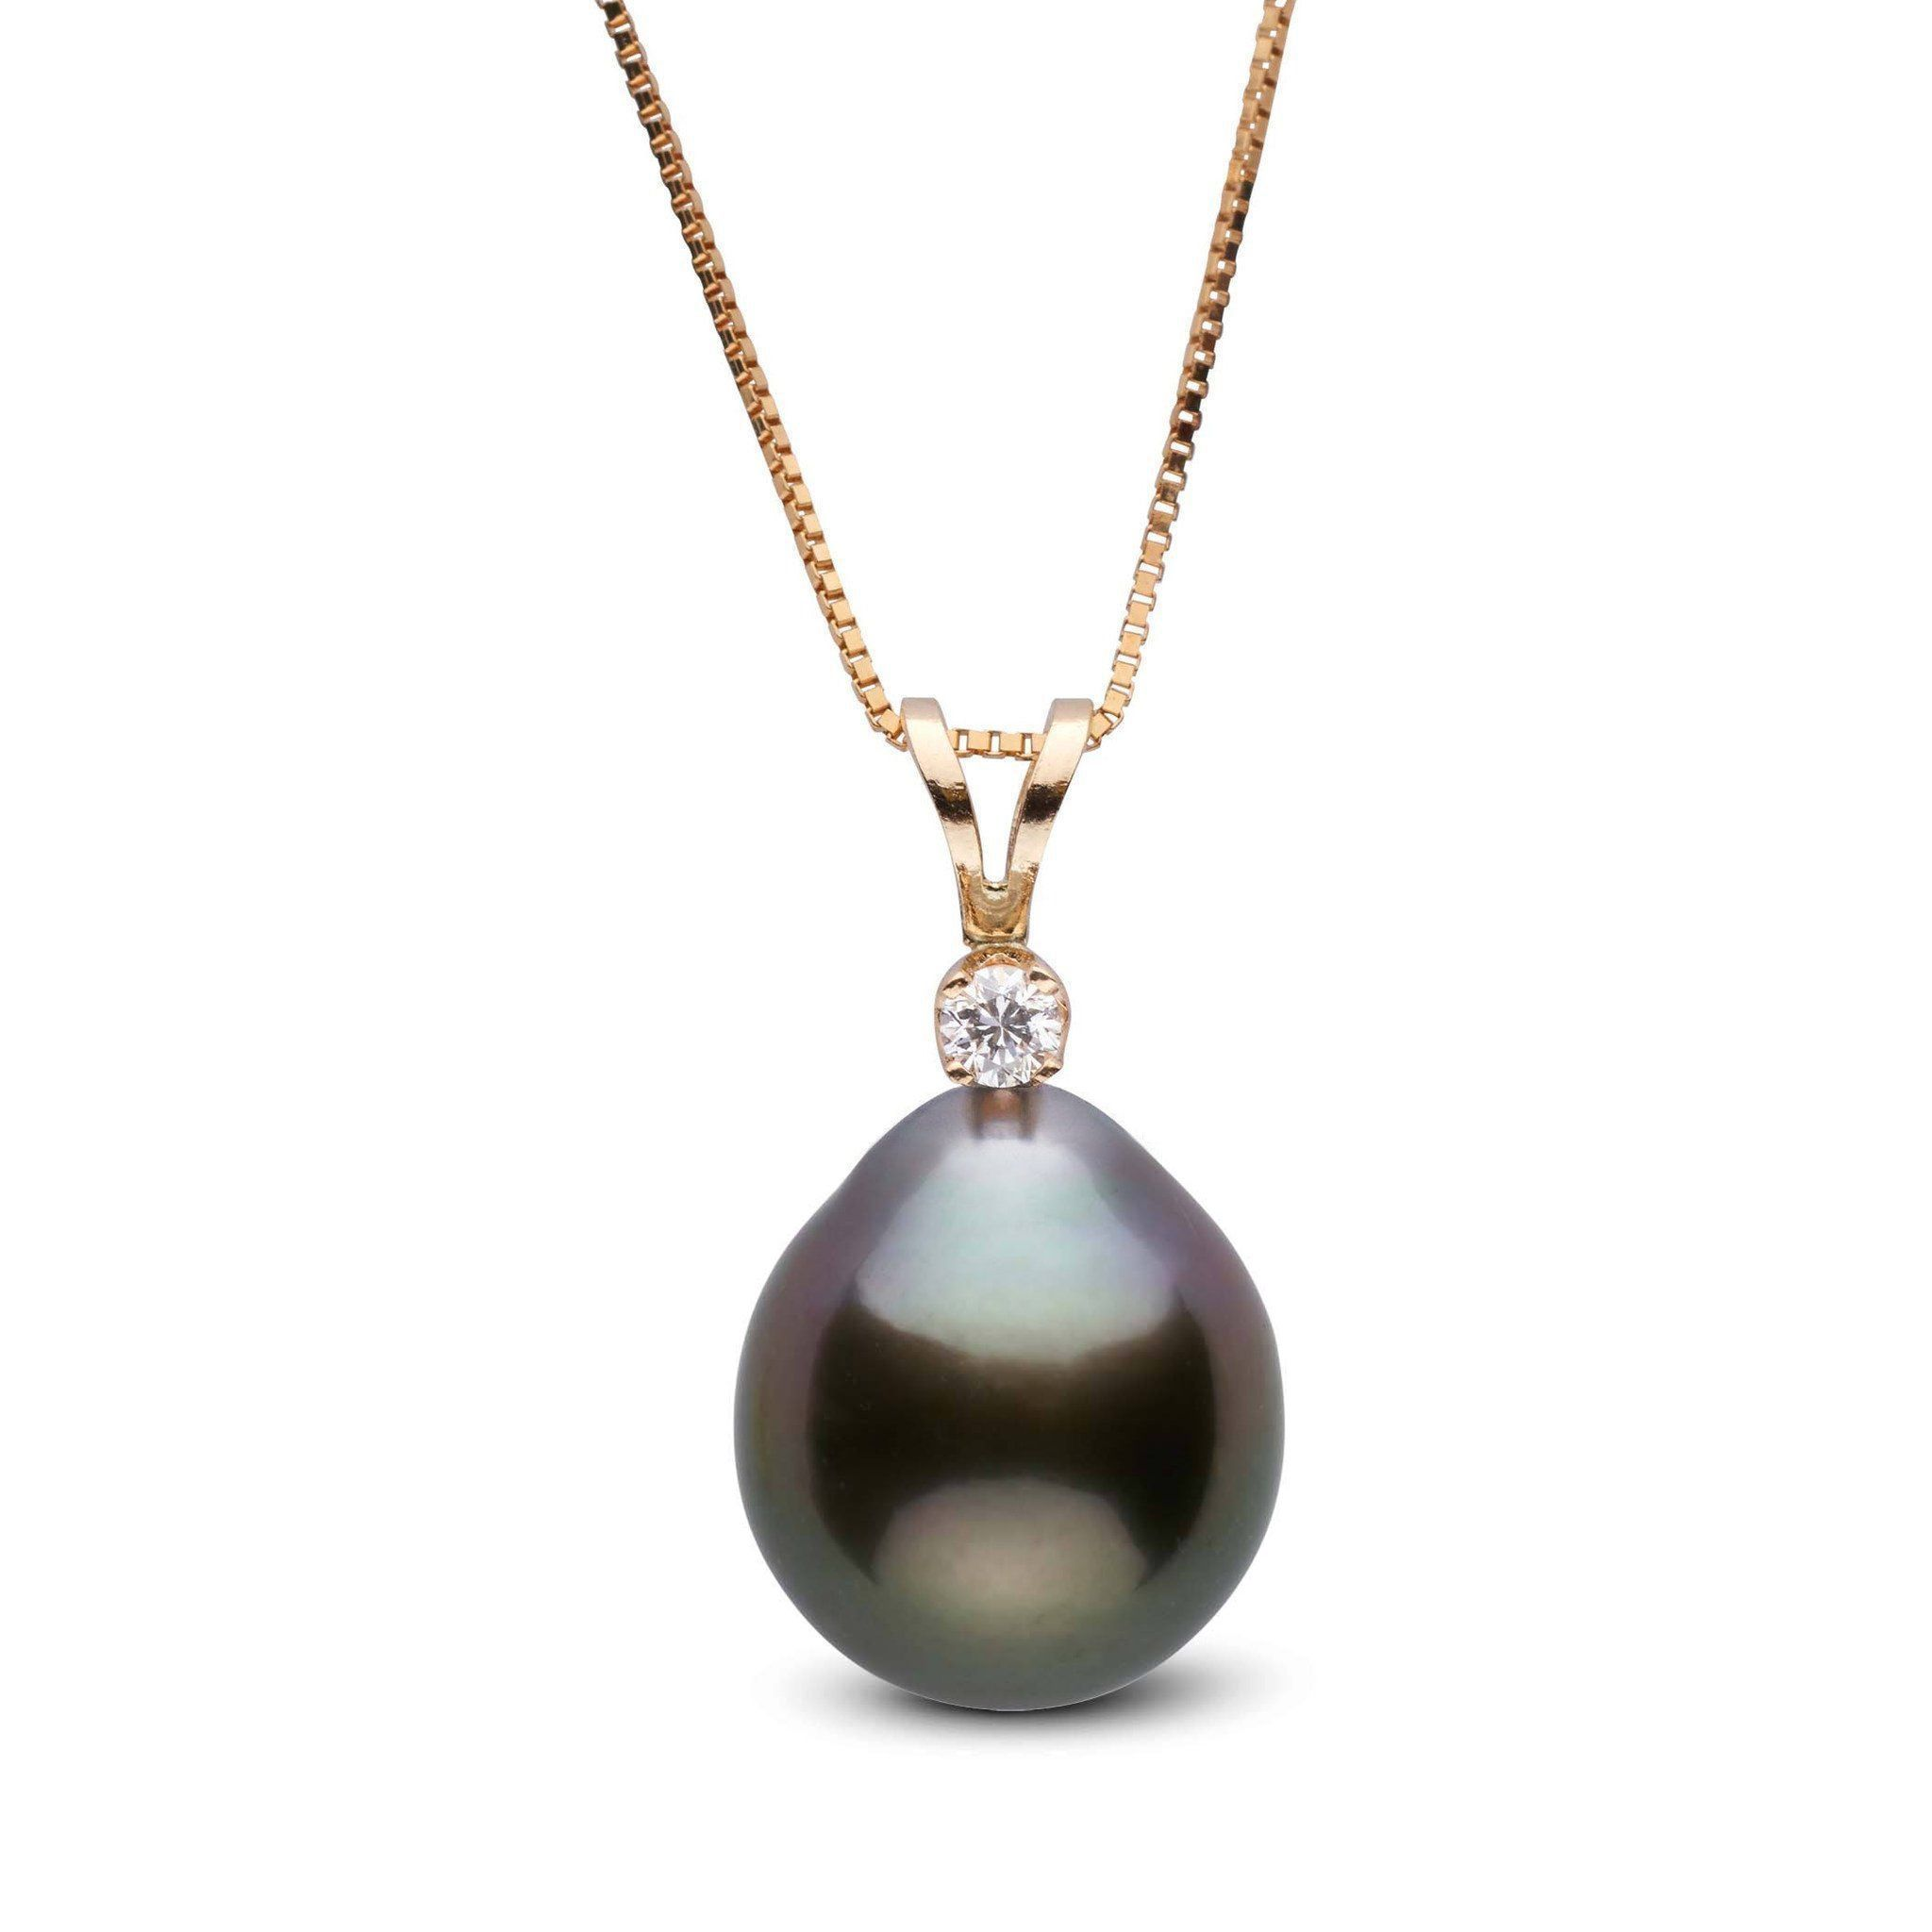 Harmony Collection 11.0-12.0 mm Drop Tahitian Pearl & Diamond Pendant